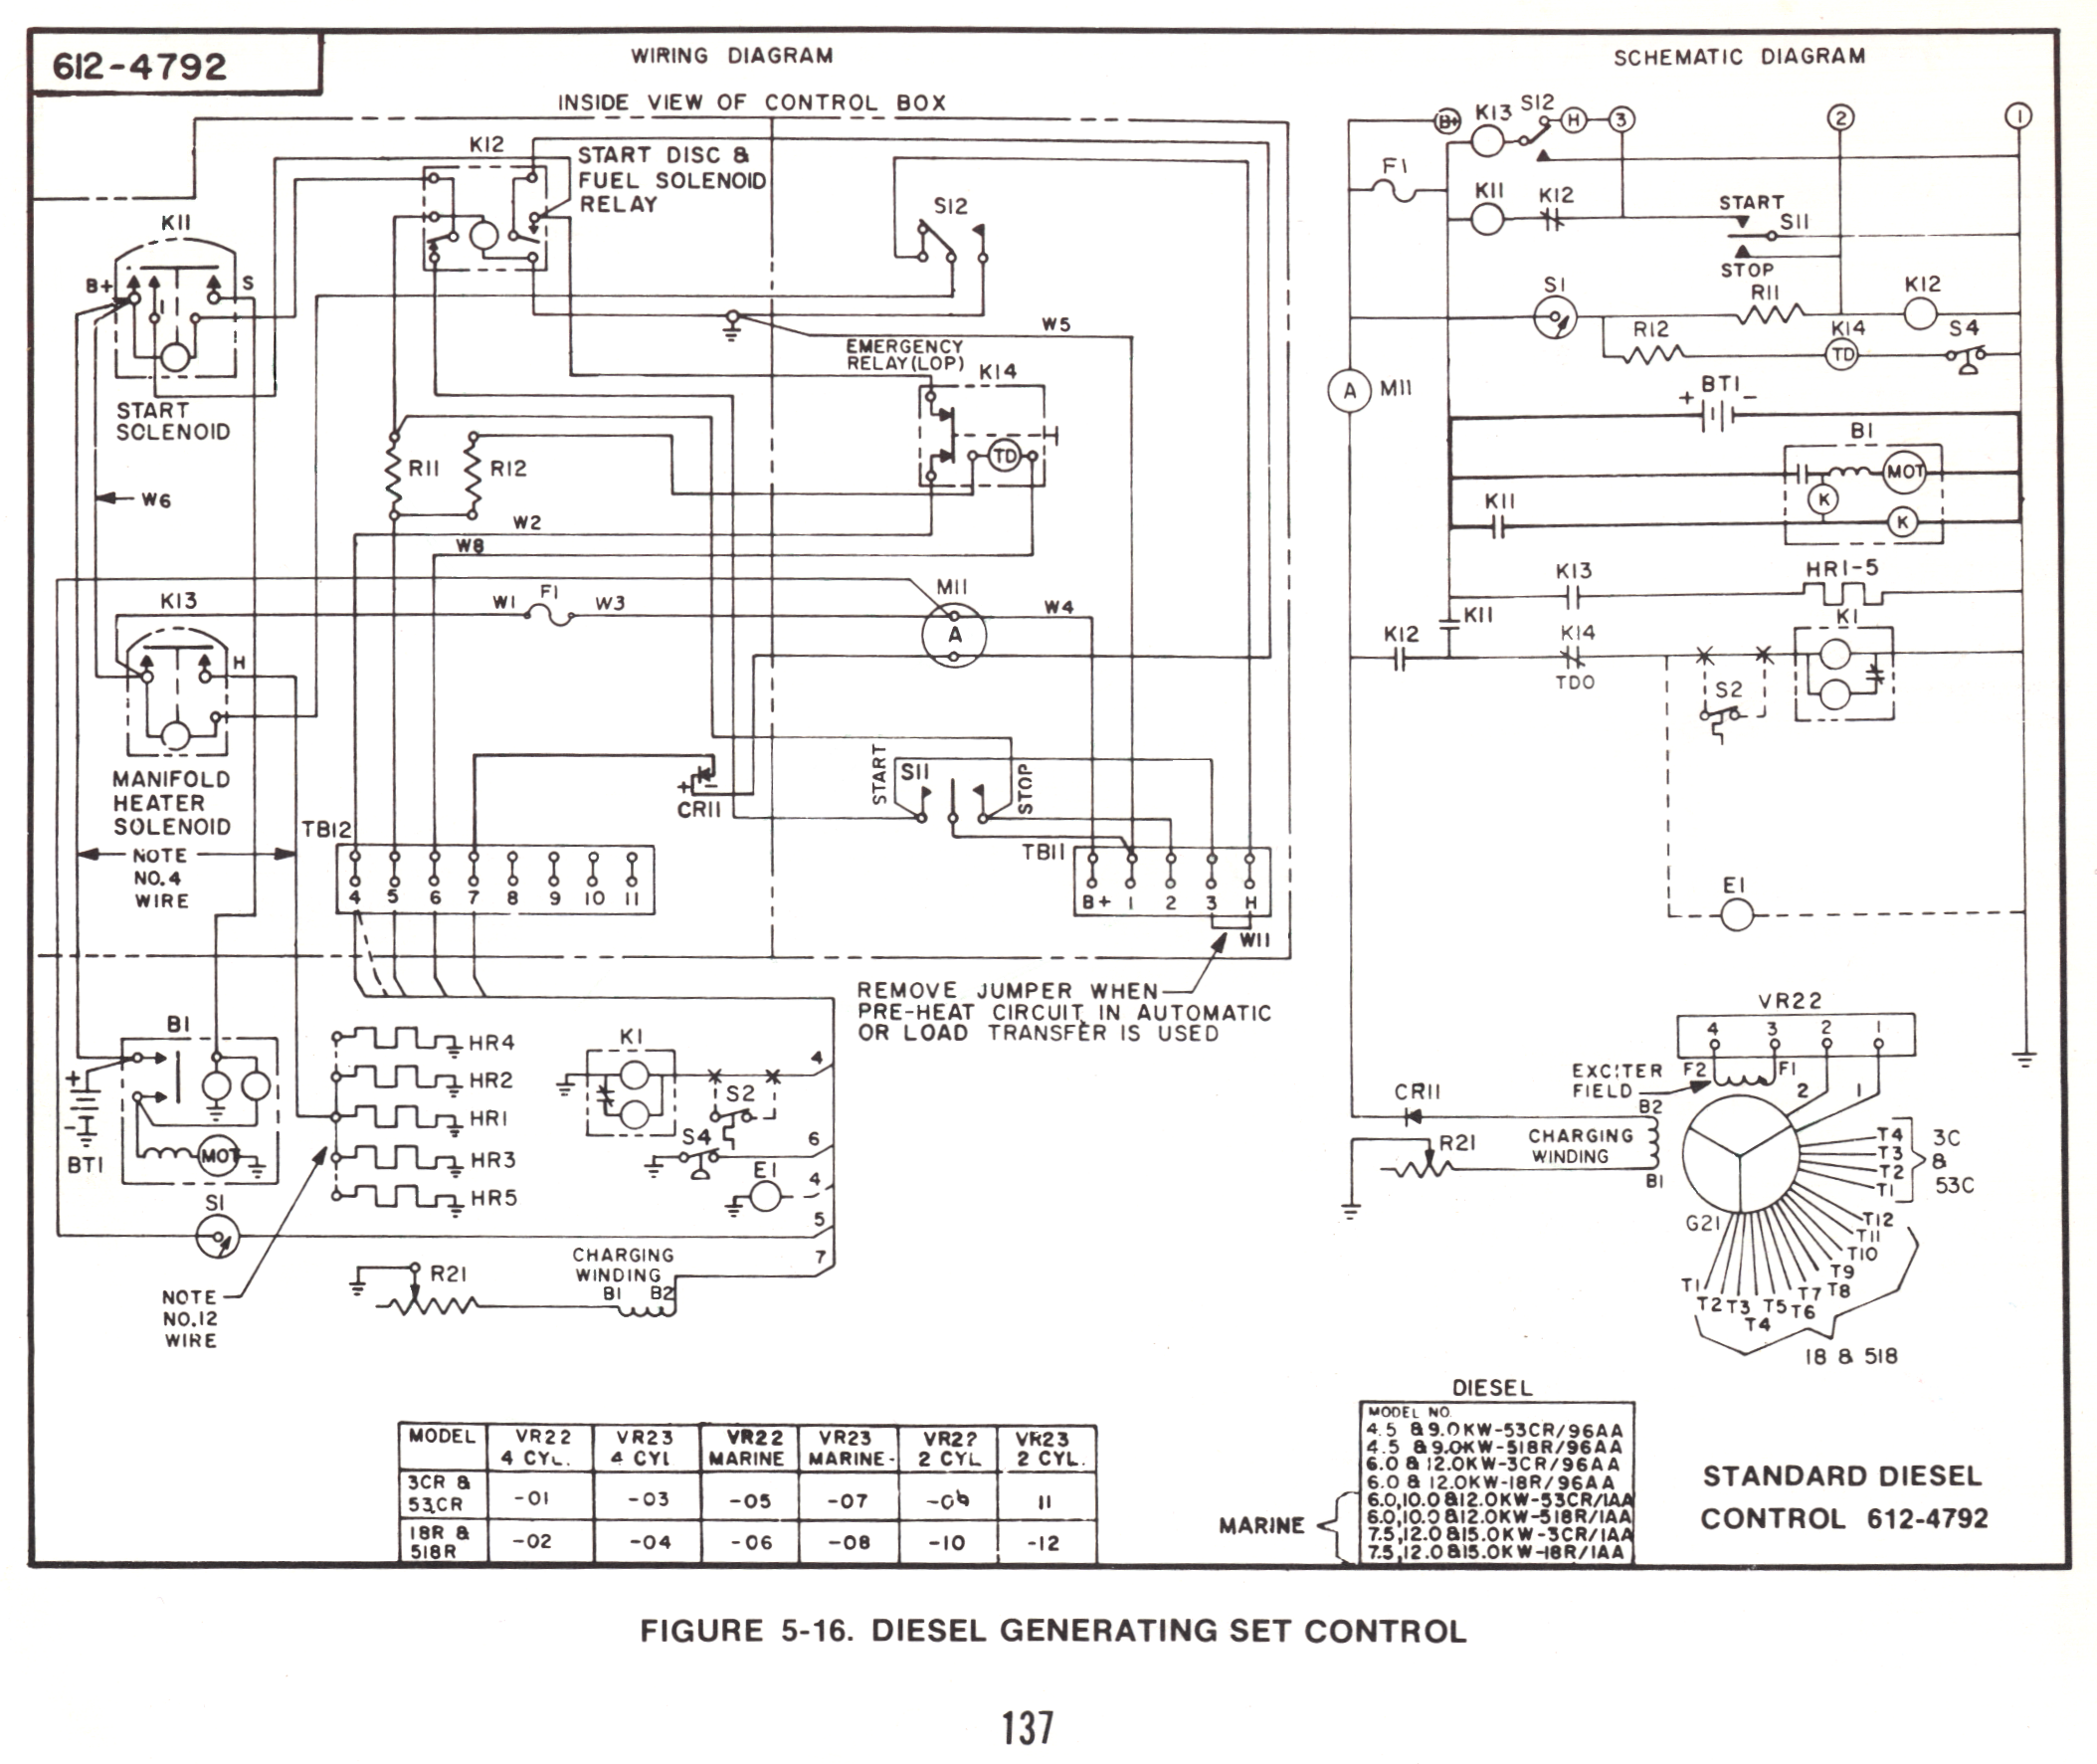 7 5 onan generator wiring diagram wiring diagram data schema  rv generator wiring diagrams wiring diagram tutorial 7 5 onan generator wiring diagram